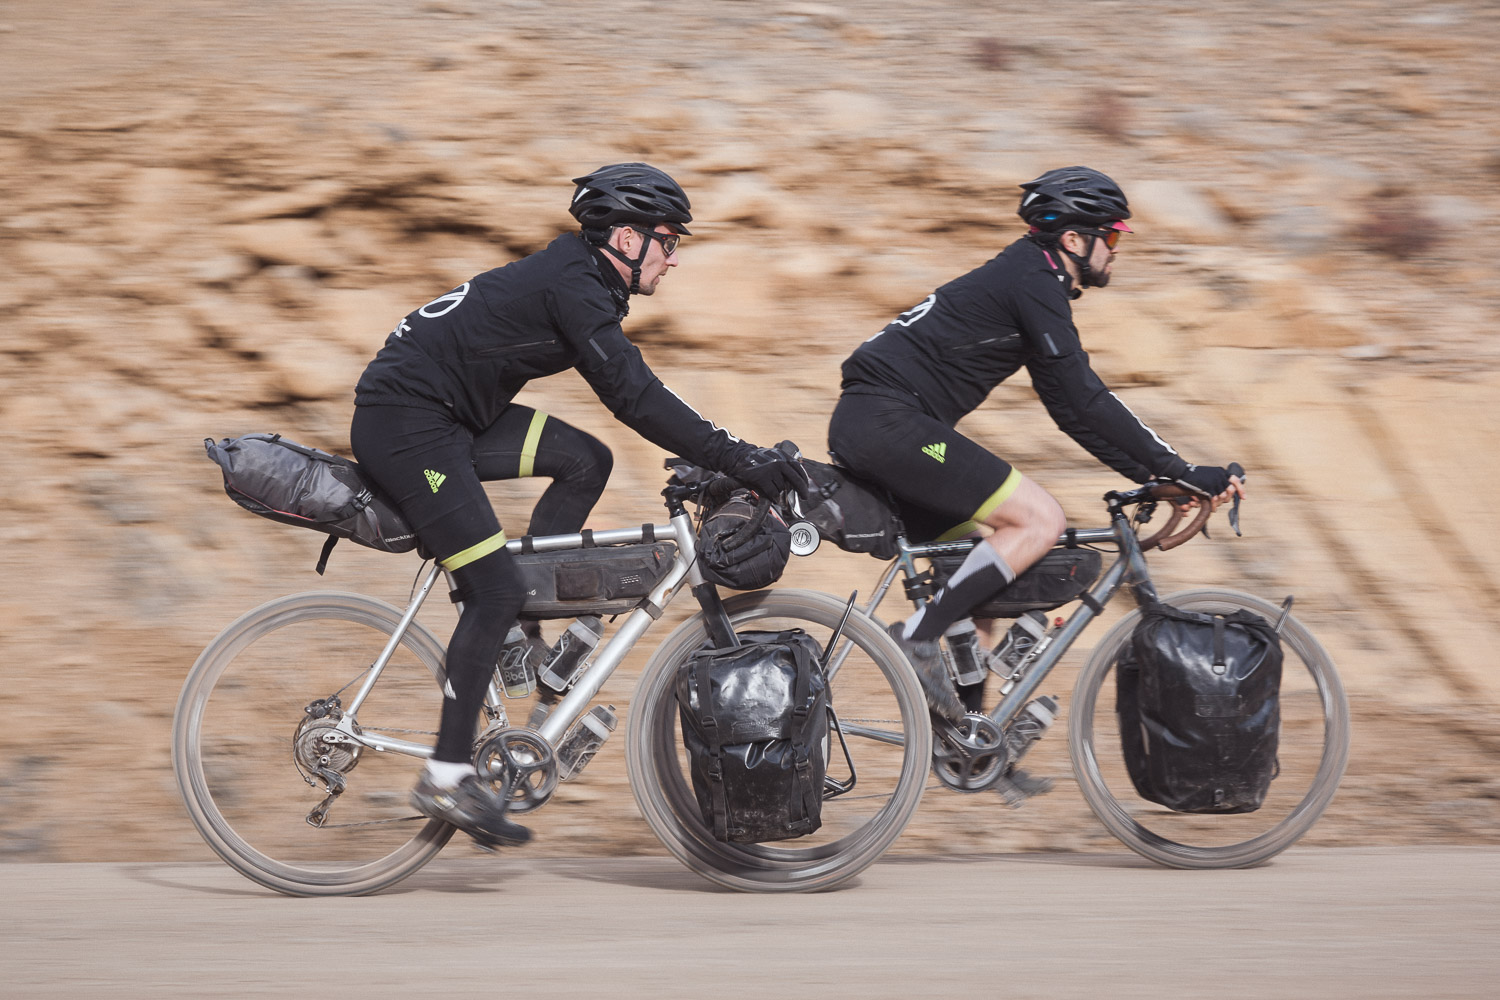 8bar bikes adventures morocco gravel 20151214 0066 bearbeitet 1 - 8bar Adventures - Morocco - High Atlas - Part 2/2